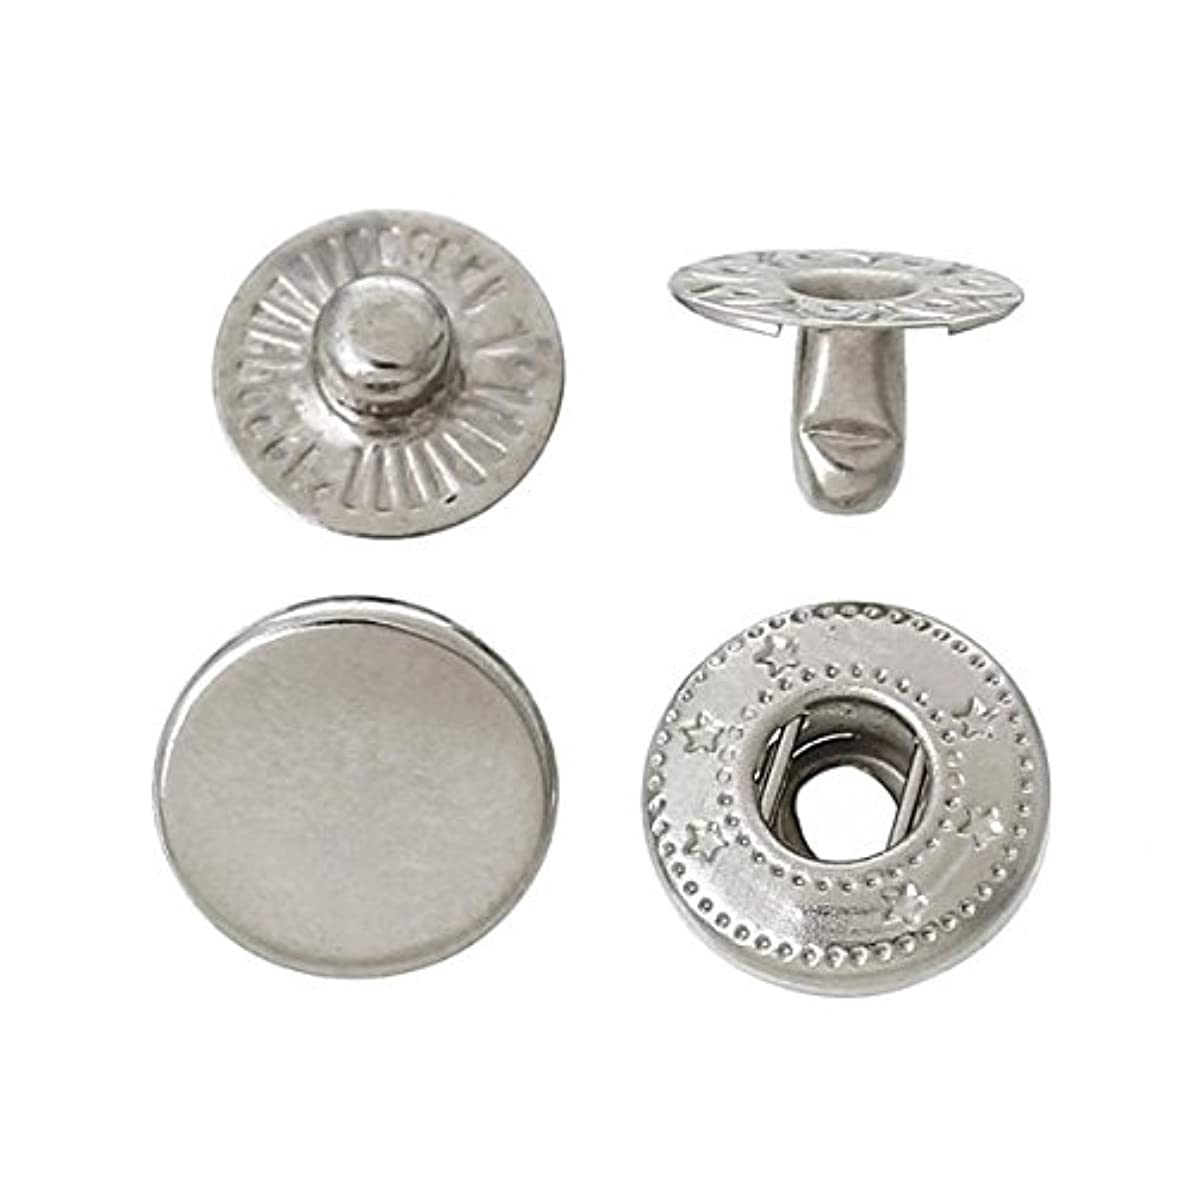 120 Sets 10mm Metal Snap Fasteners Press Stud Rounded Sewing Rivet Buttons Clothing Leather Craft DIY Poppers Silver ozuqwq9219